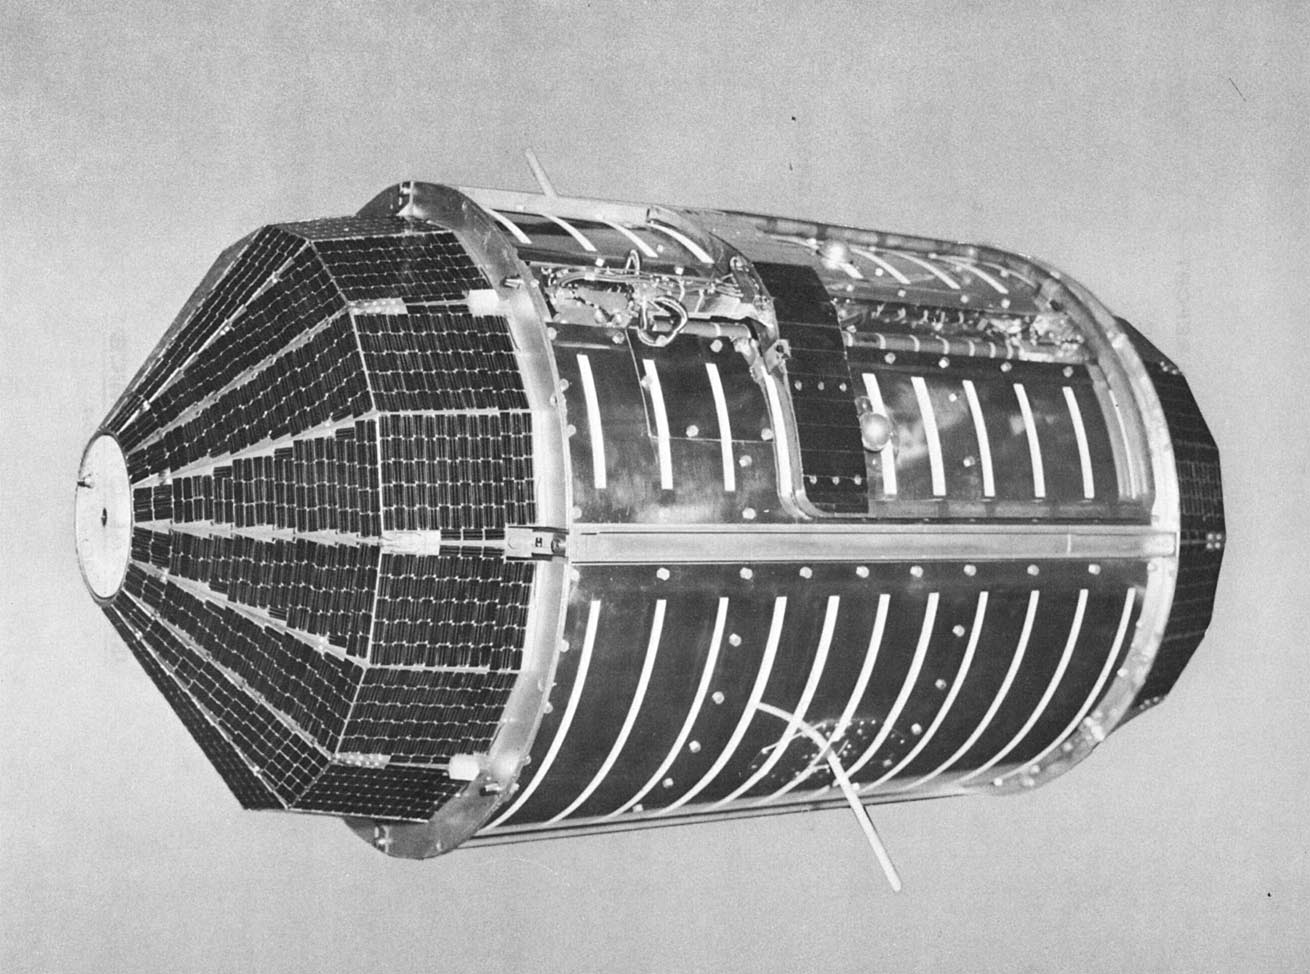 Nasa nssdca spacecraft details image of the ov1 14 spacecraft sciox Image collections